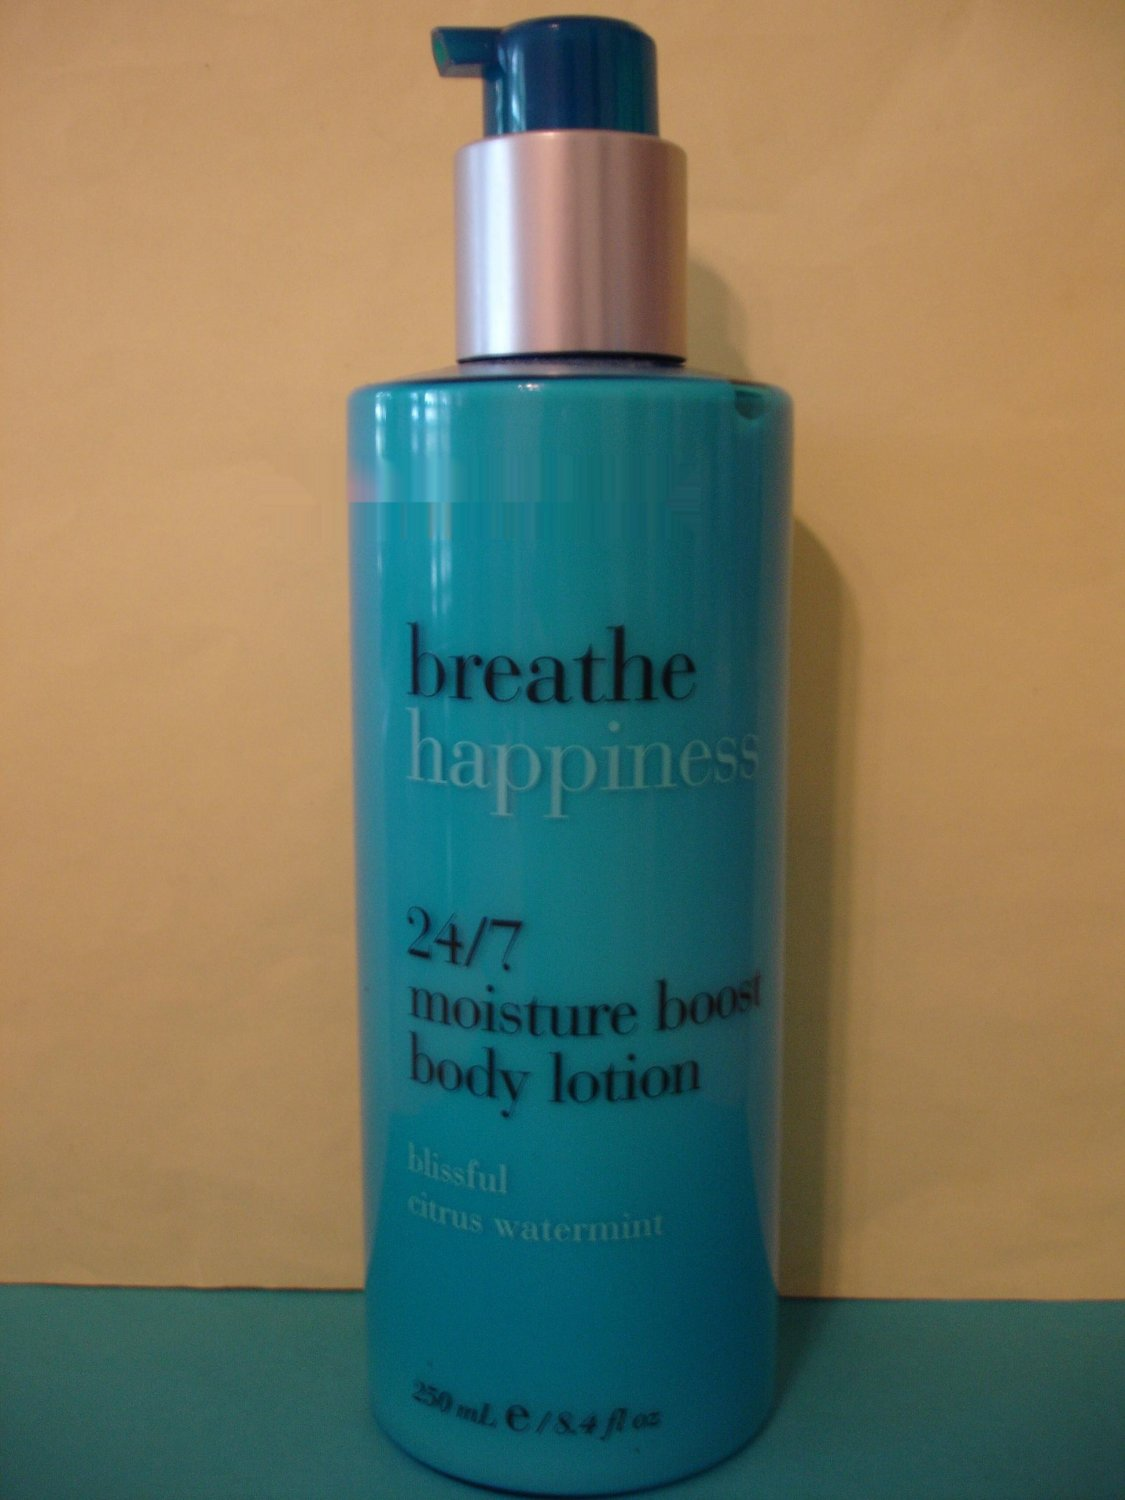 Bath Amp Body Works Breathe Happiness Citrus Watermint